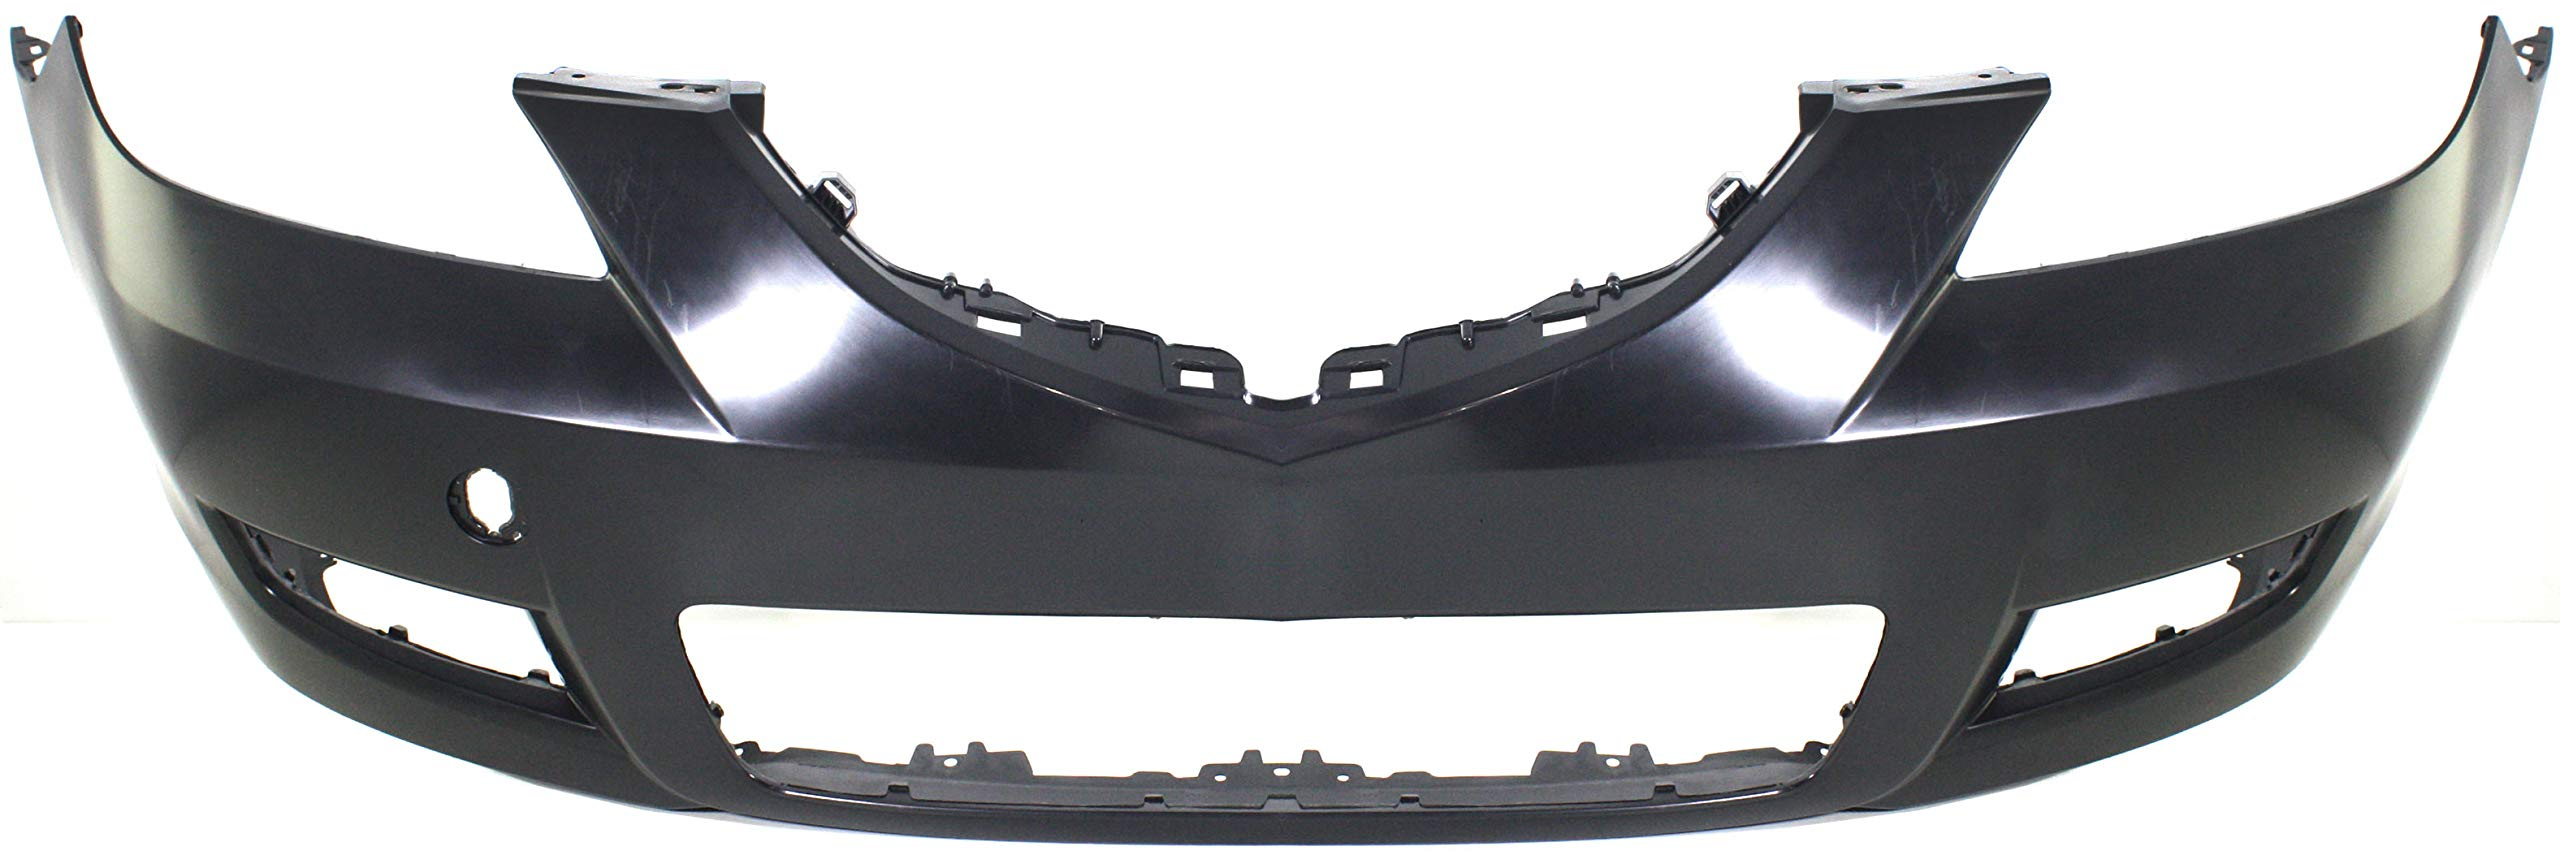 Front Bumper Cover Compatible with 2007-2009 Mazda 3 Primed Standard Type Sedan